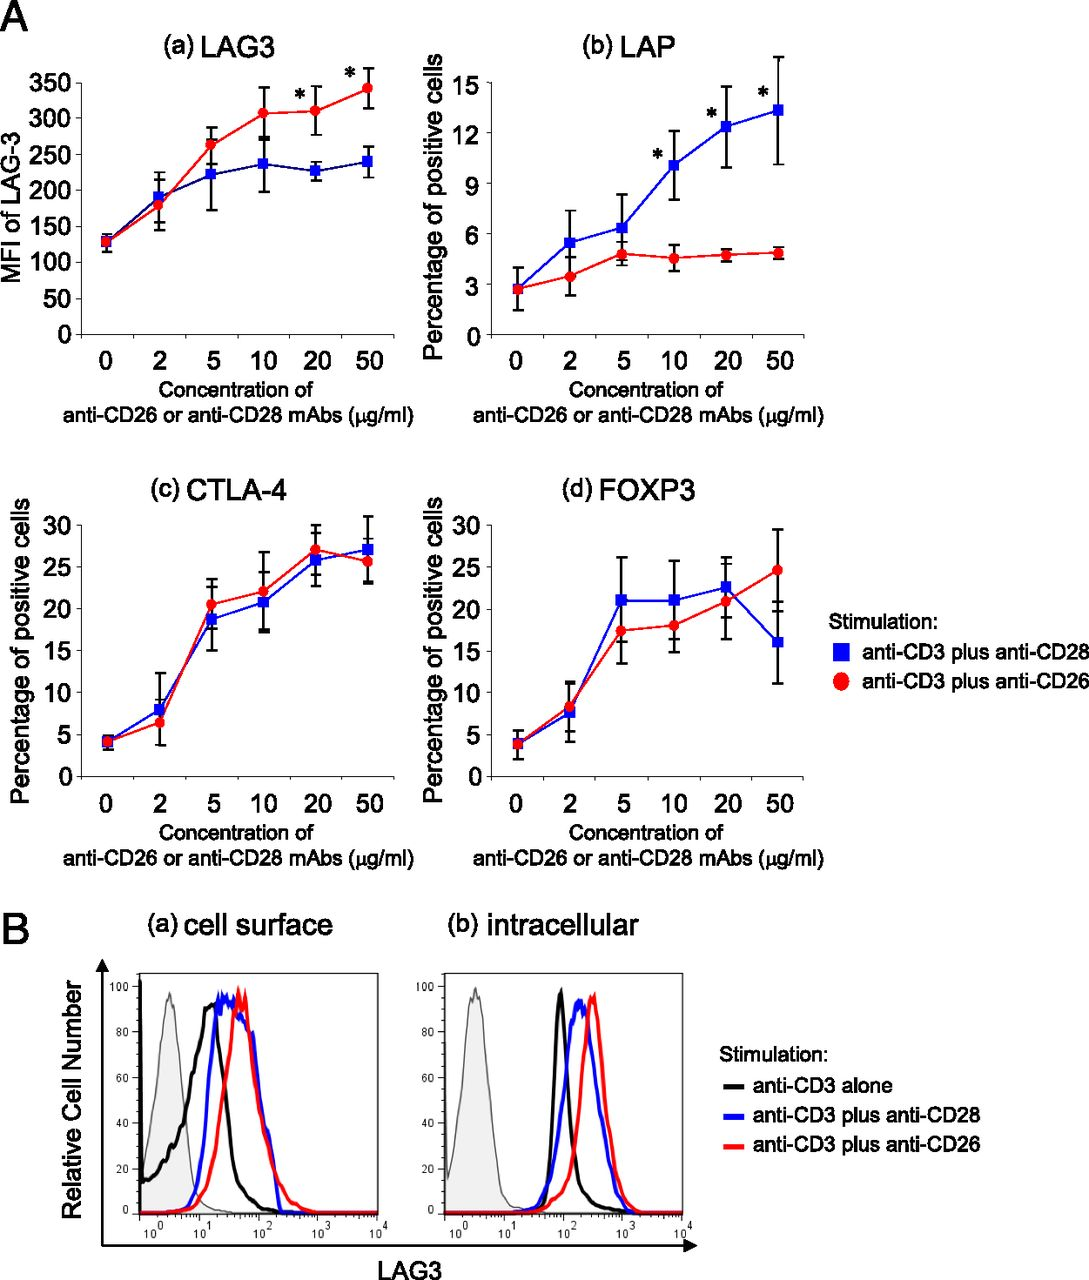 CD26-Mediated Induction of EGR2 and IL-10 as Potential Regulatory